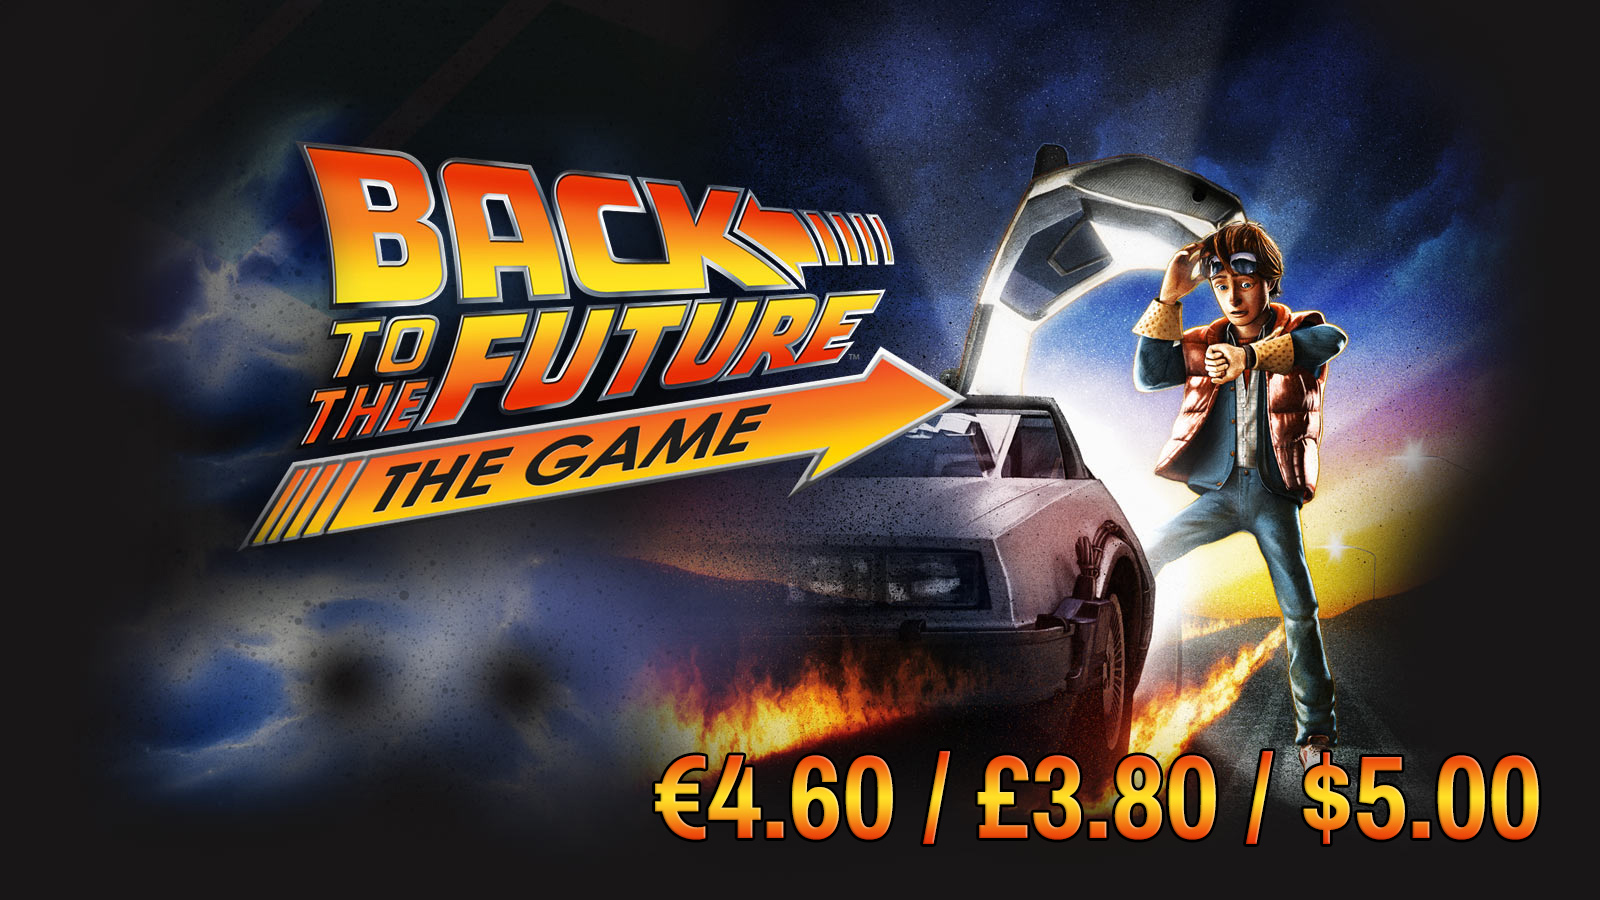 BACK TO THE FUTURE GAME SALE